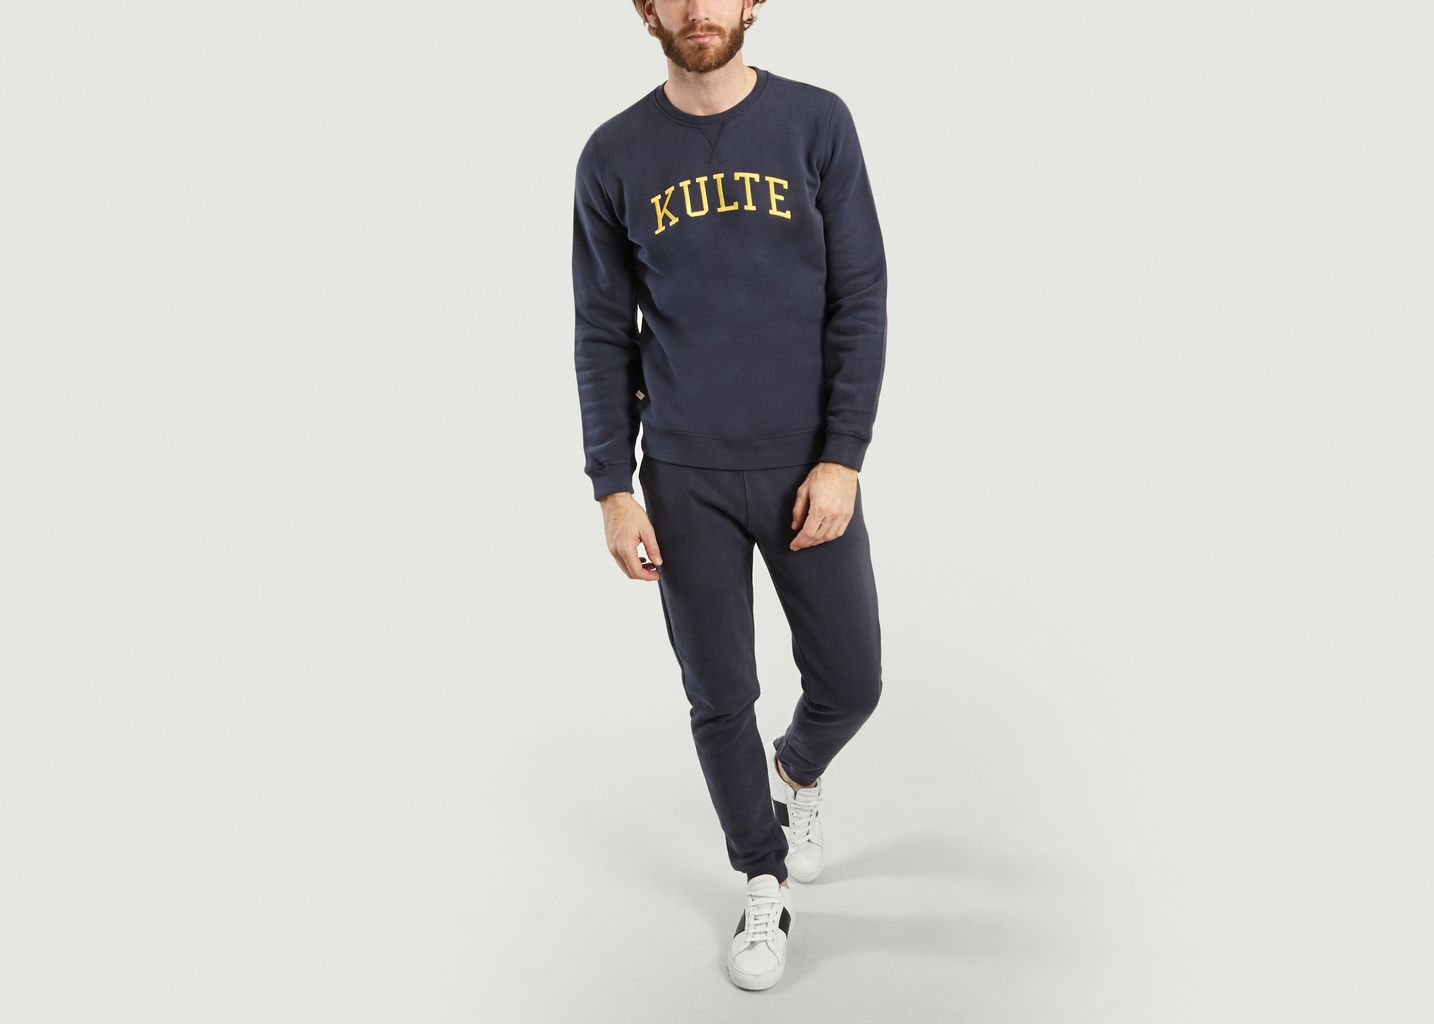 Sweat Brodé Corpo Athletic - Kulte